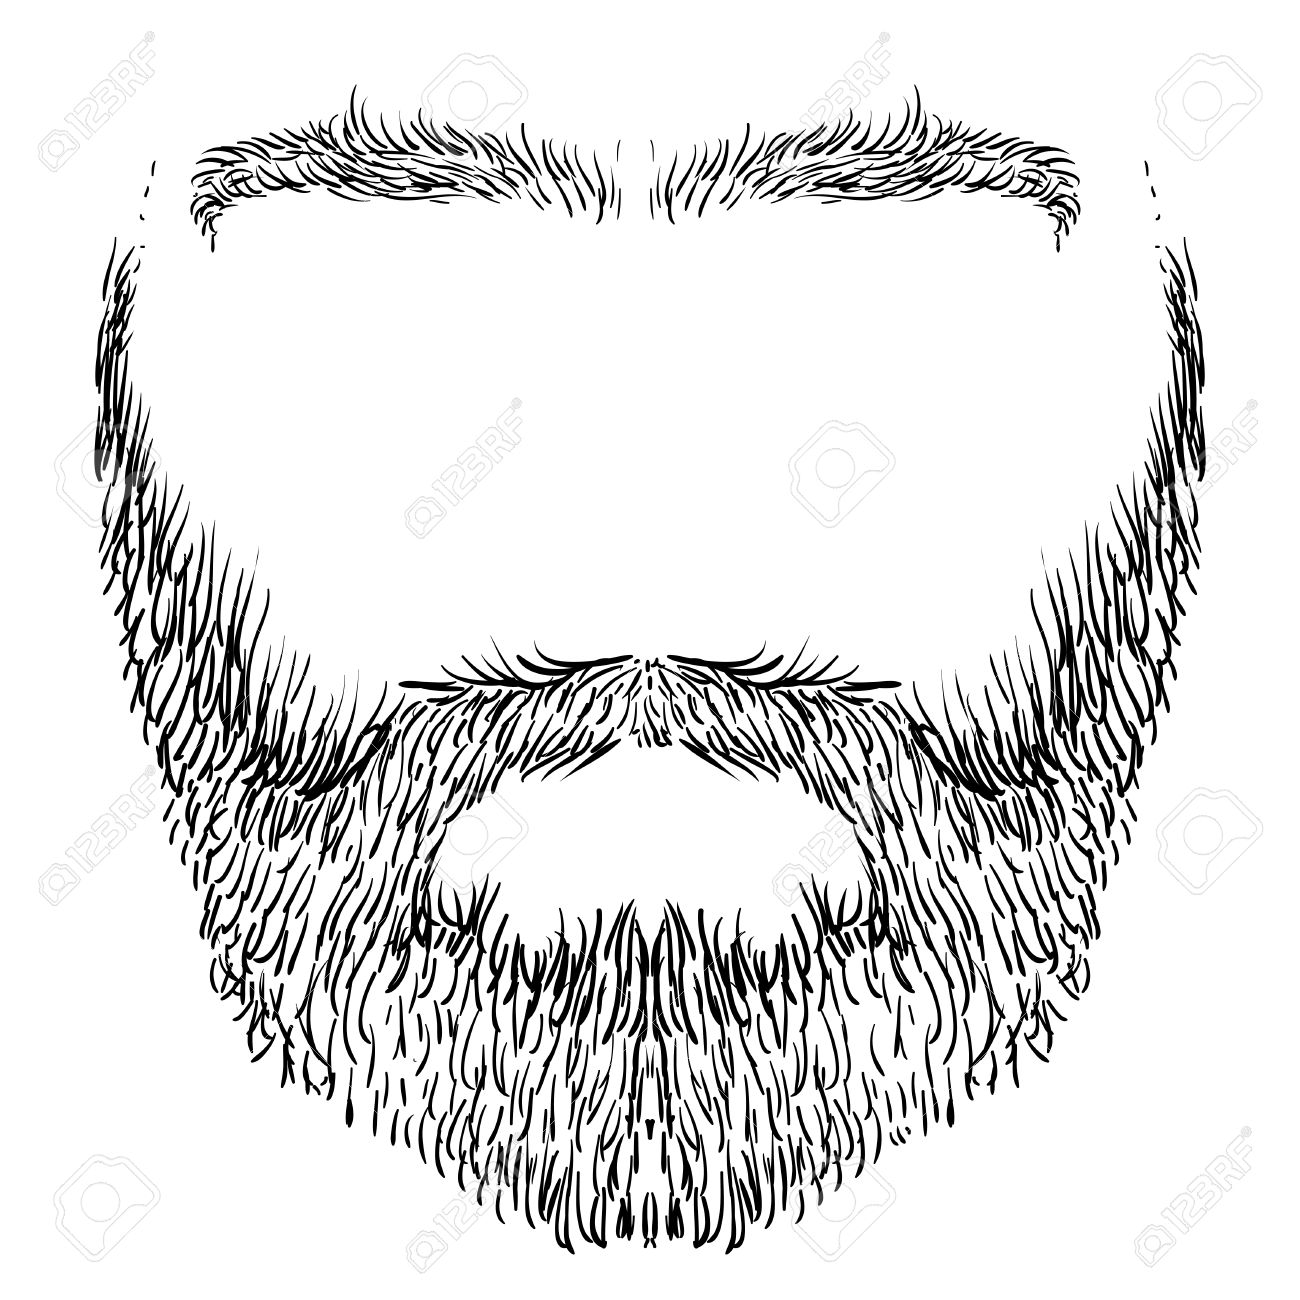 1300x1300 Form Of Beard, Mustache, Eyebrows, Freehand Drawing Royalty Free